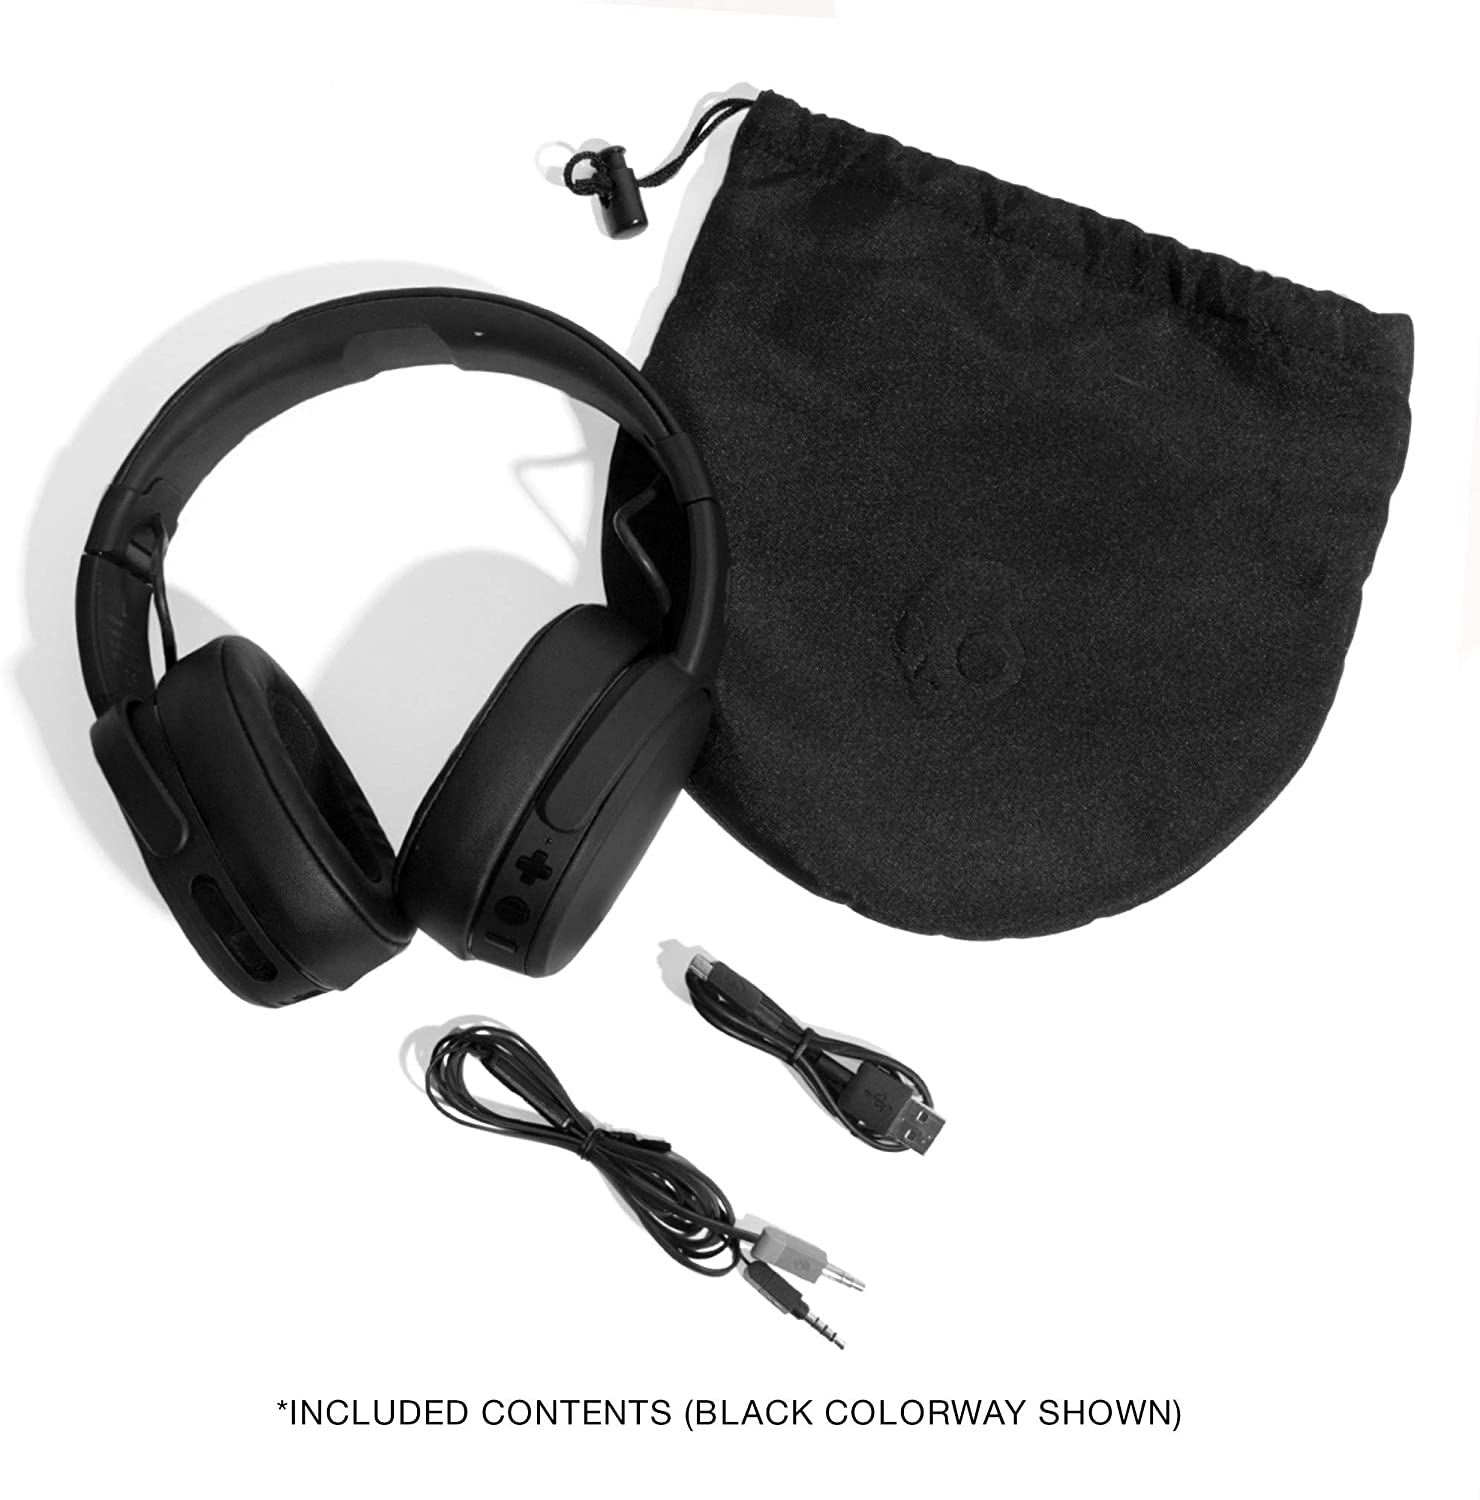 Skullcandy Crusher Wireless Over-Ear Headphone with Mic